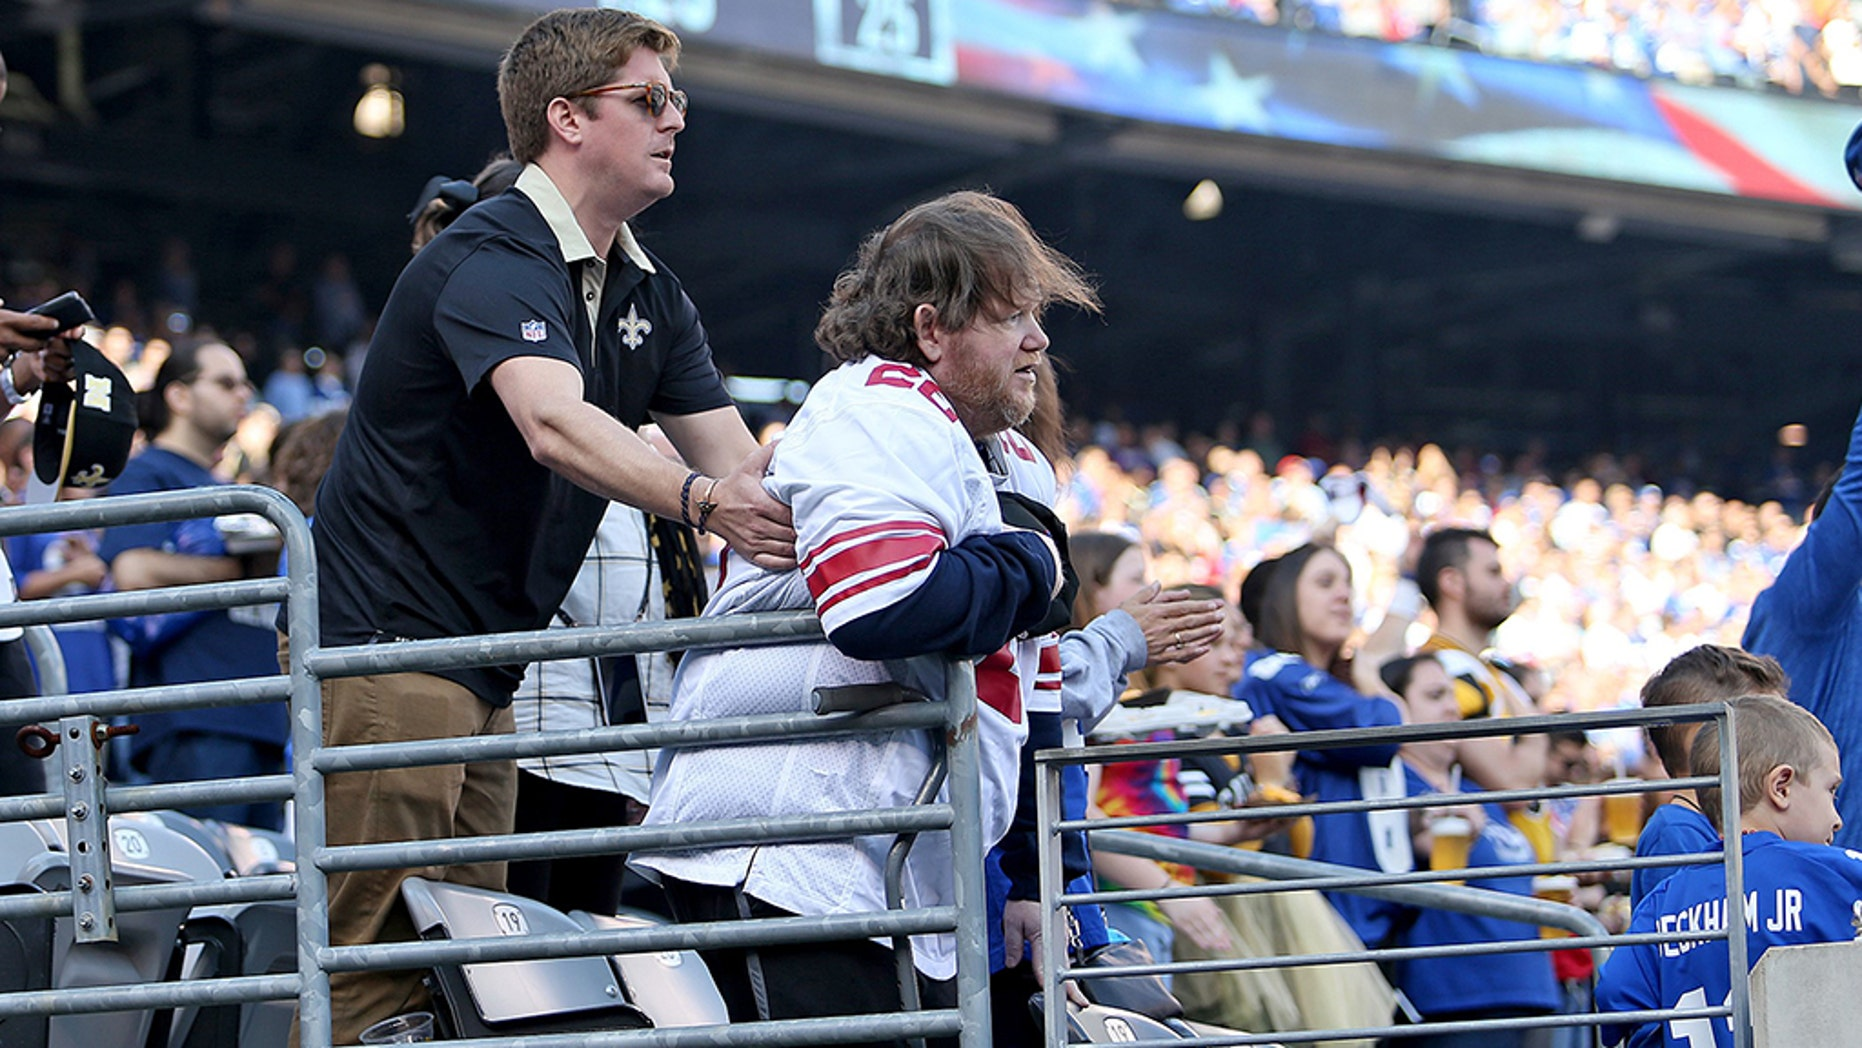 A Saints fans helps a disabled Giants fan sitting in front of him to stay standing during the National Anthem before the game on Sunday, September 30, 2018.